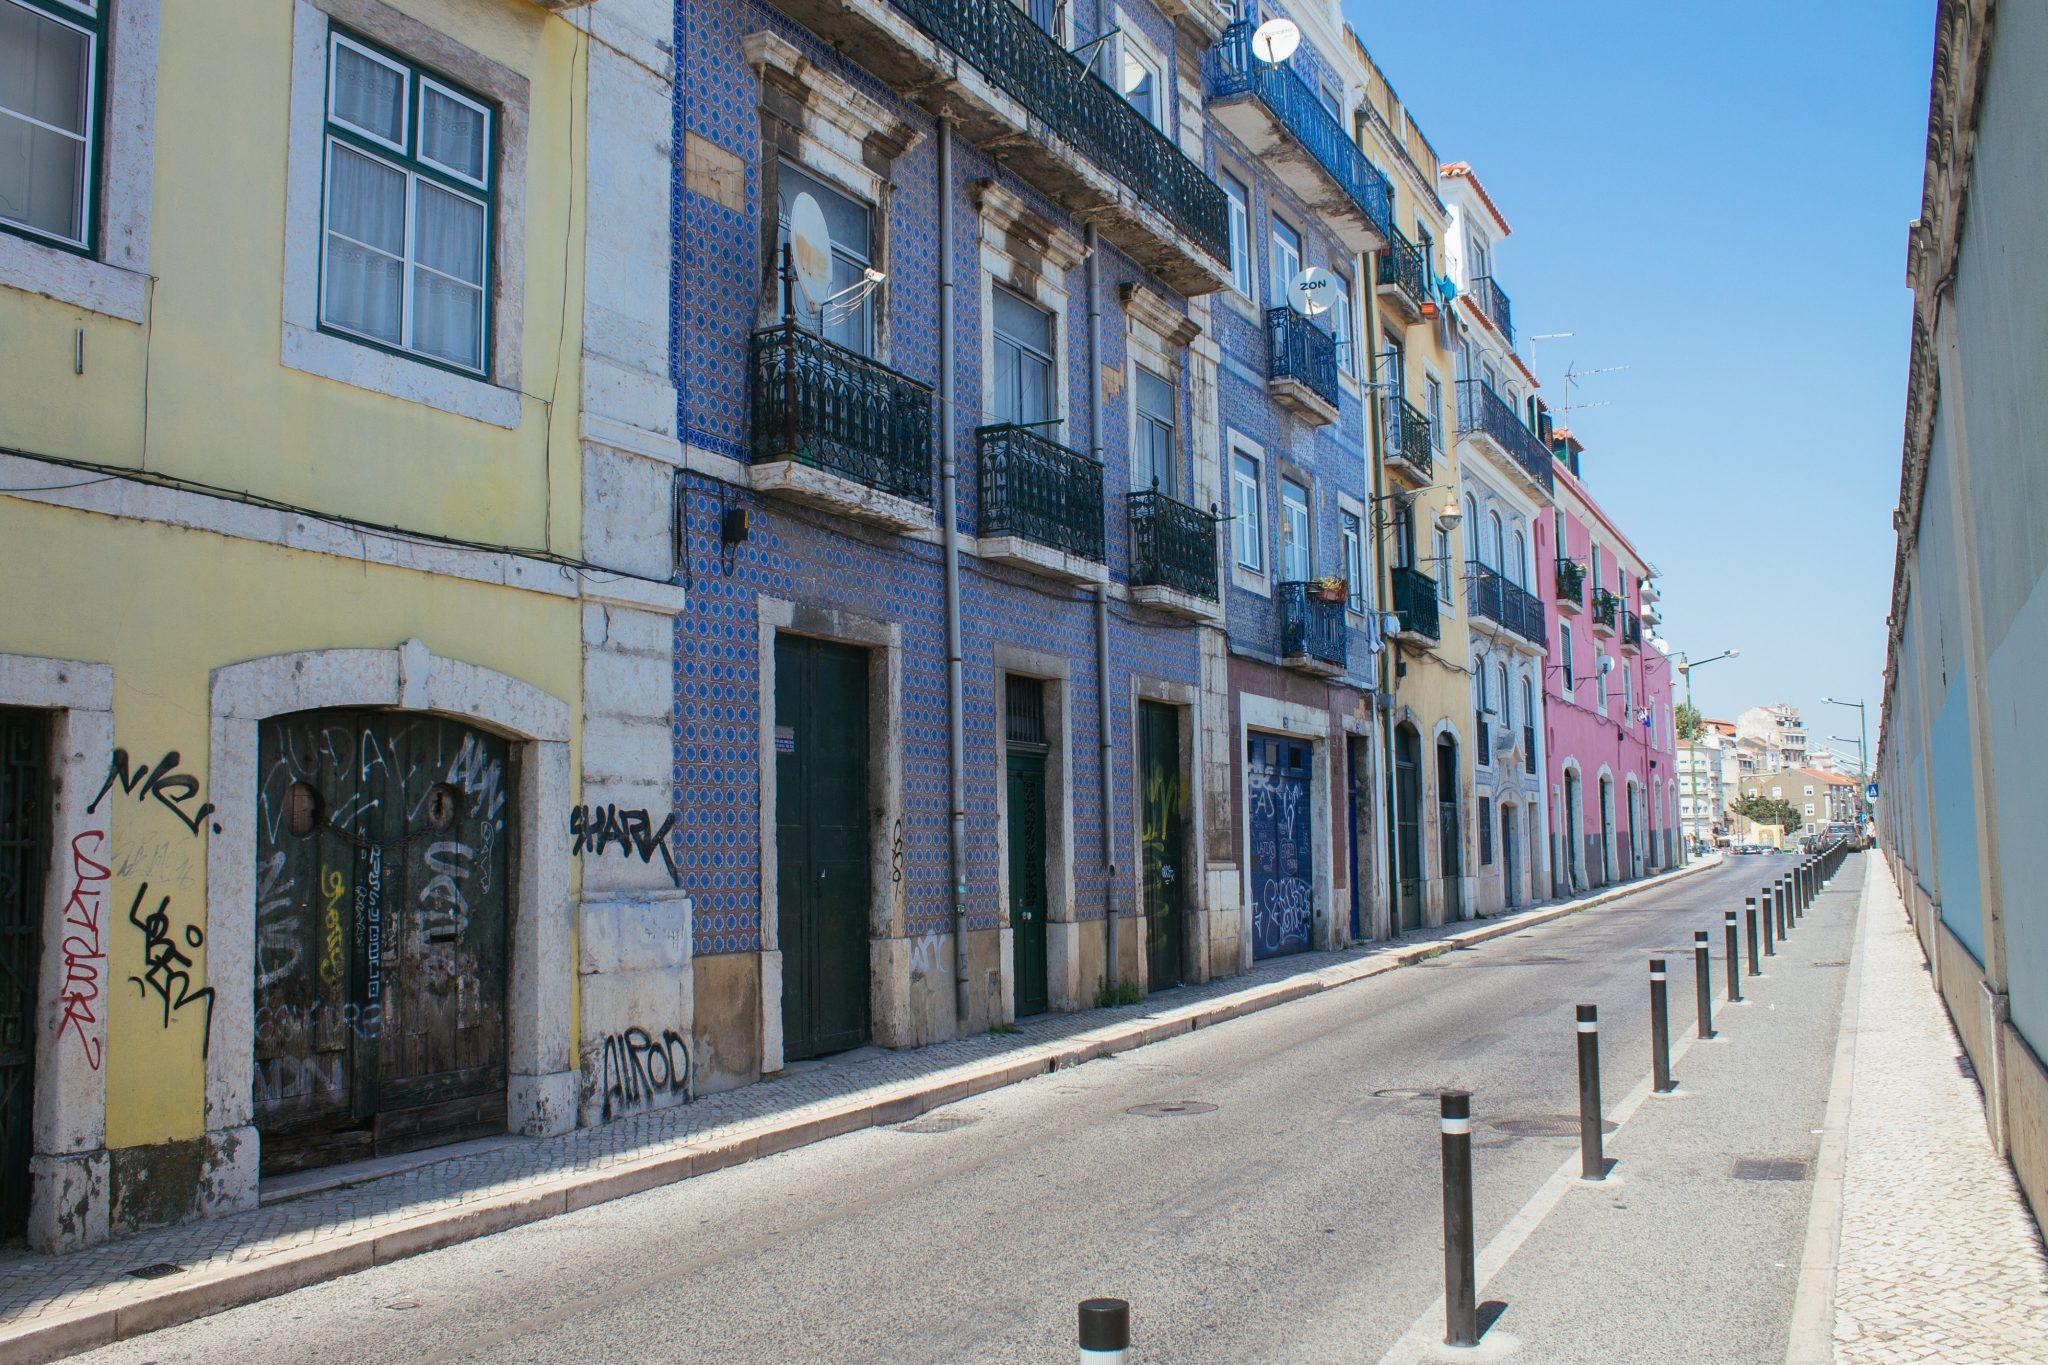 Complete Portugal Travel Guide: 20 Things That Surprised Me